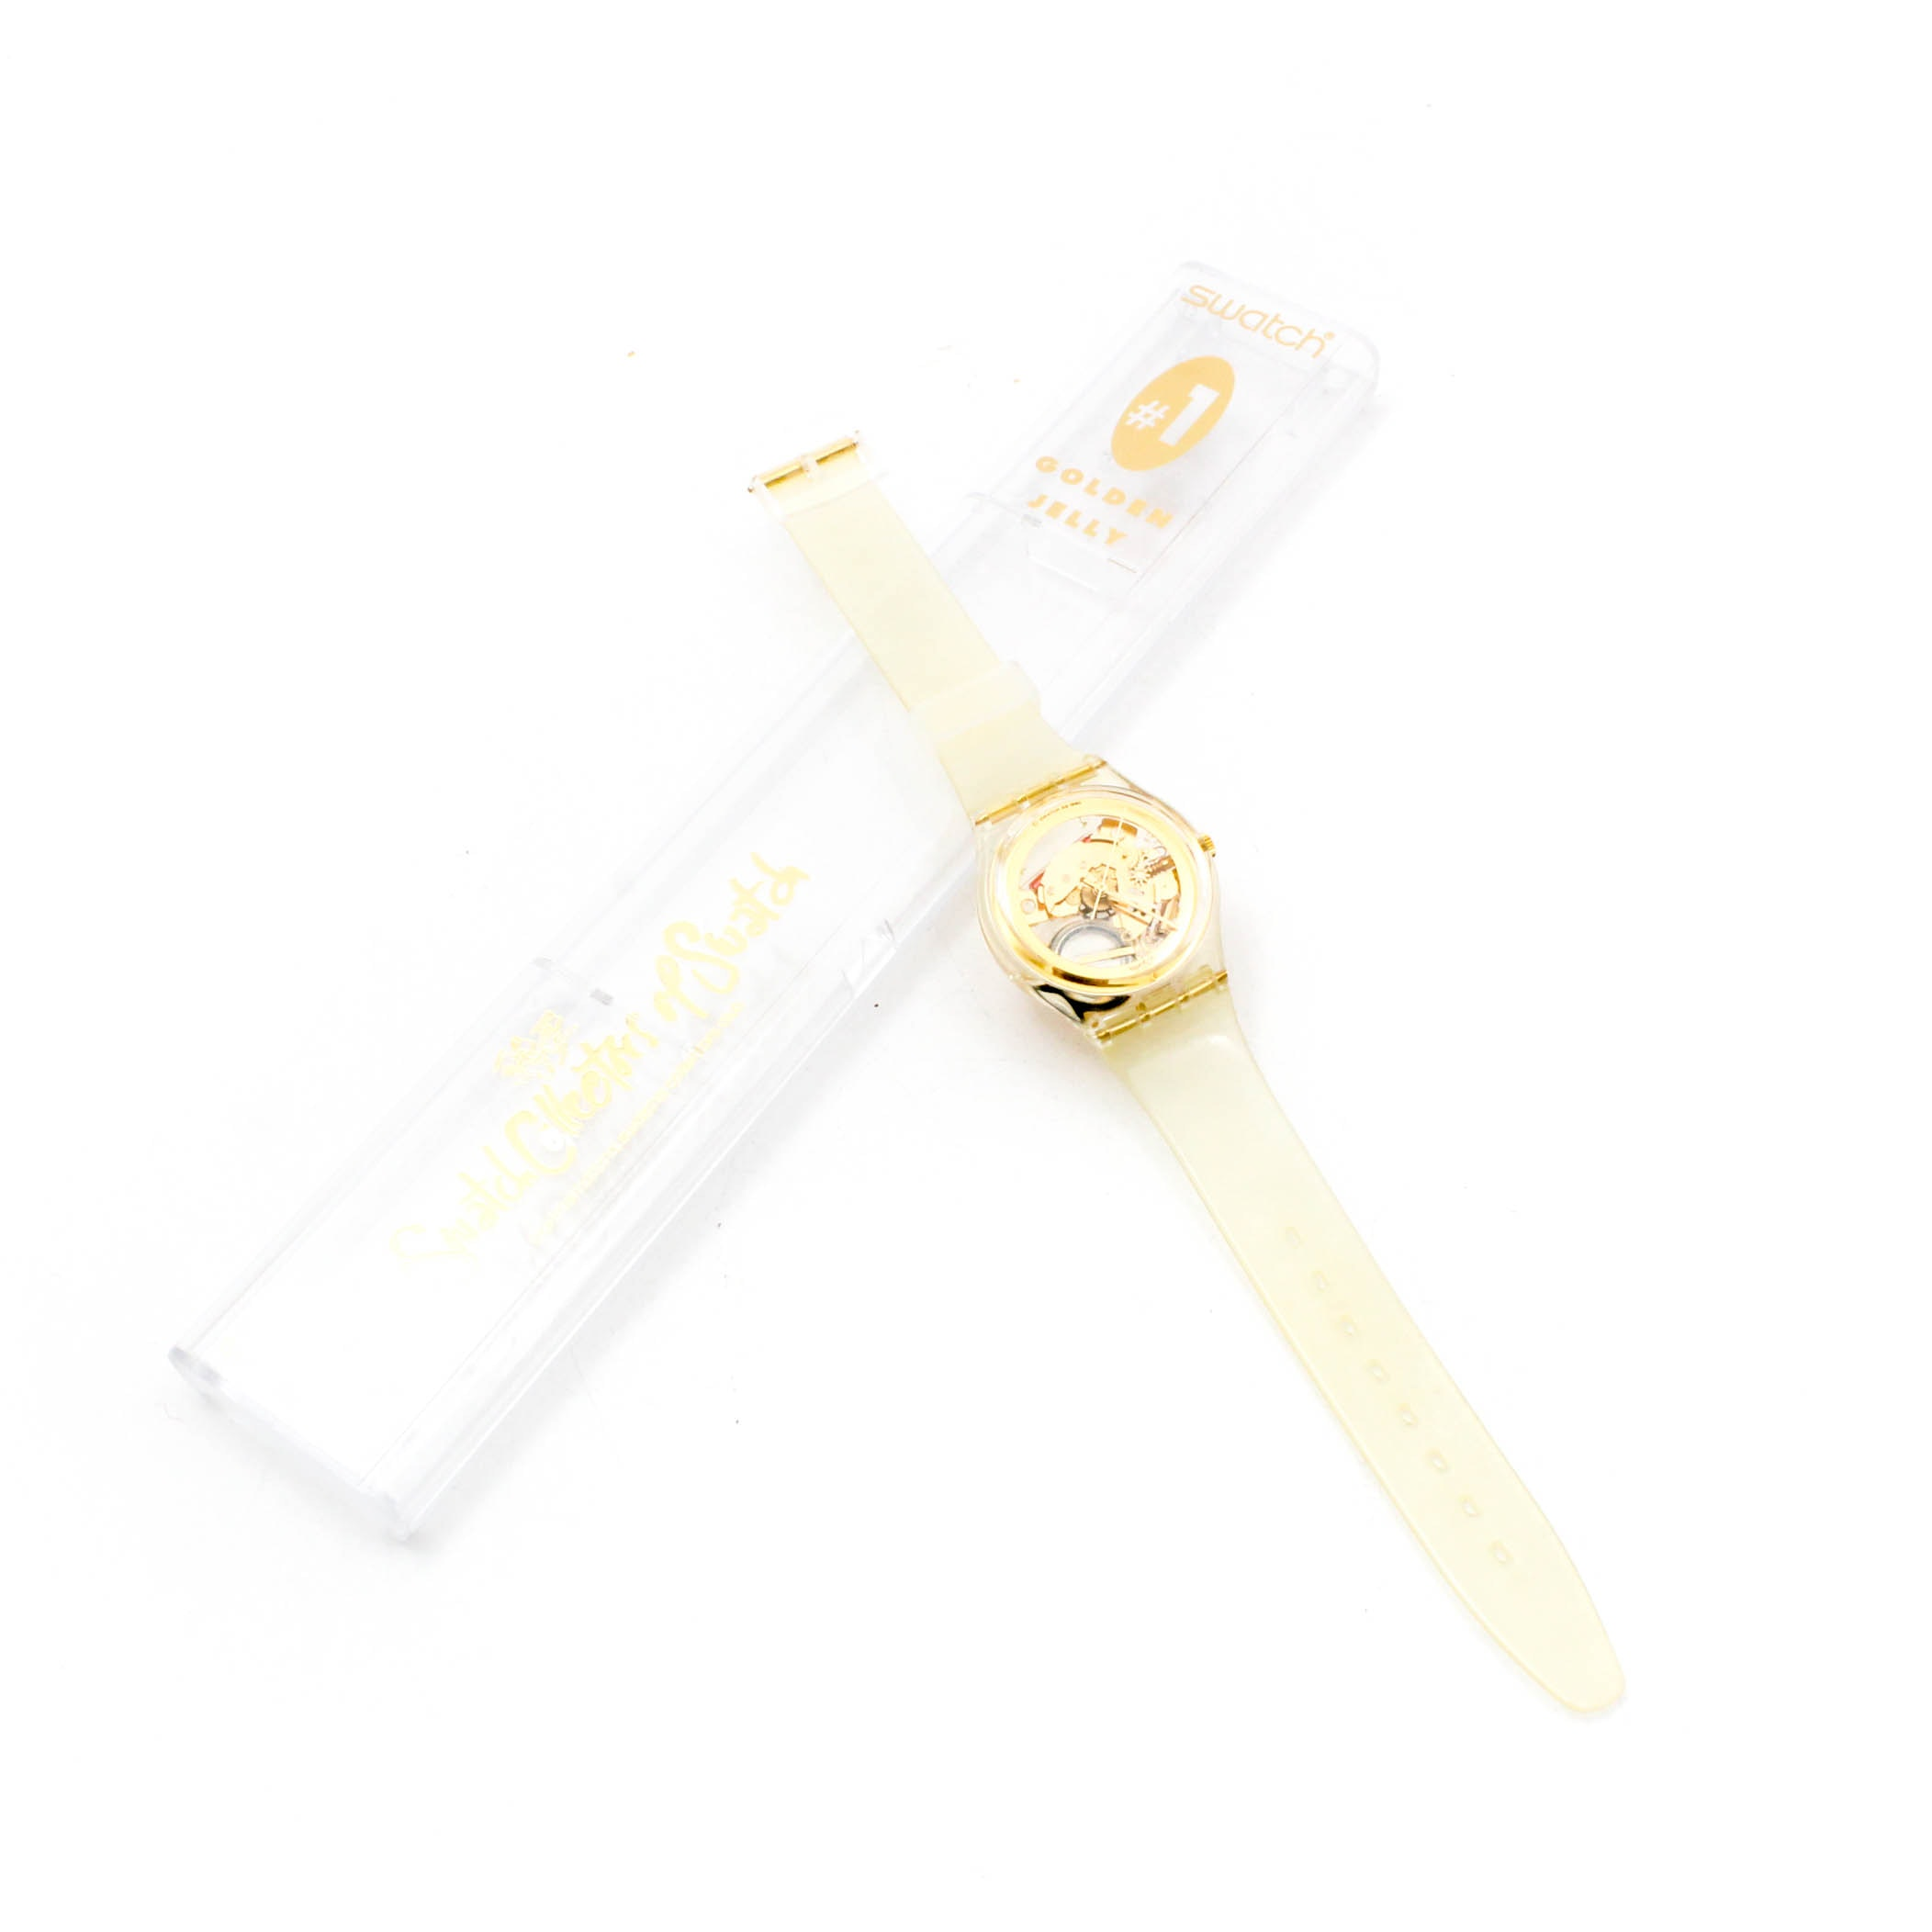 Swatch 1990 Collector's Club #1 Golden Jelly Wristwatch in Case